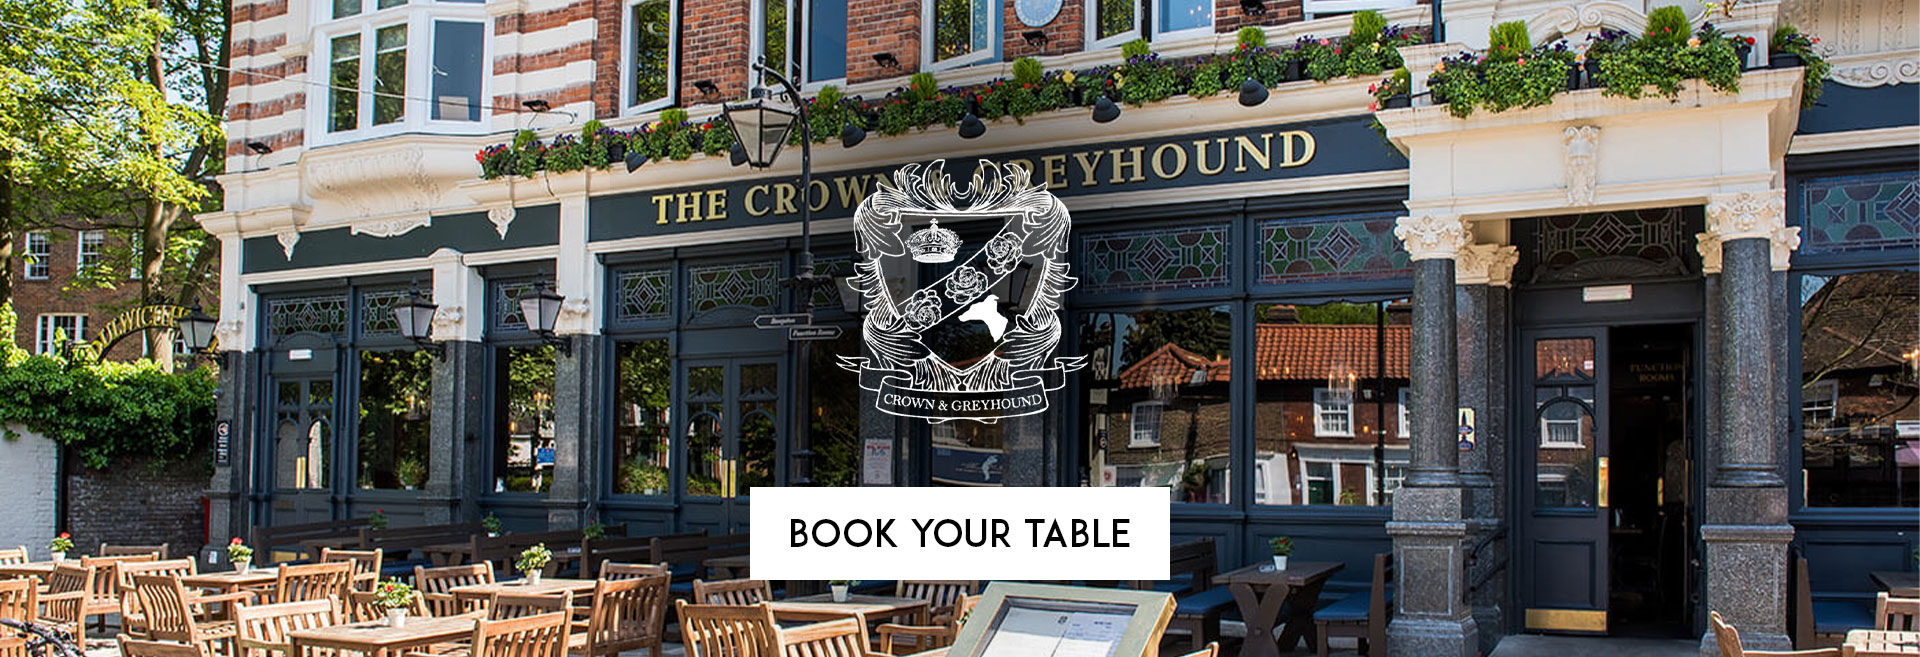 Book Your Table Crown & Greyhound